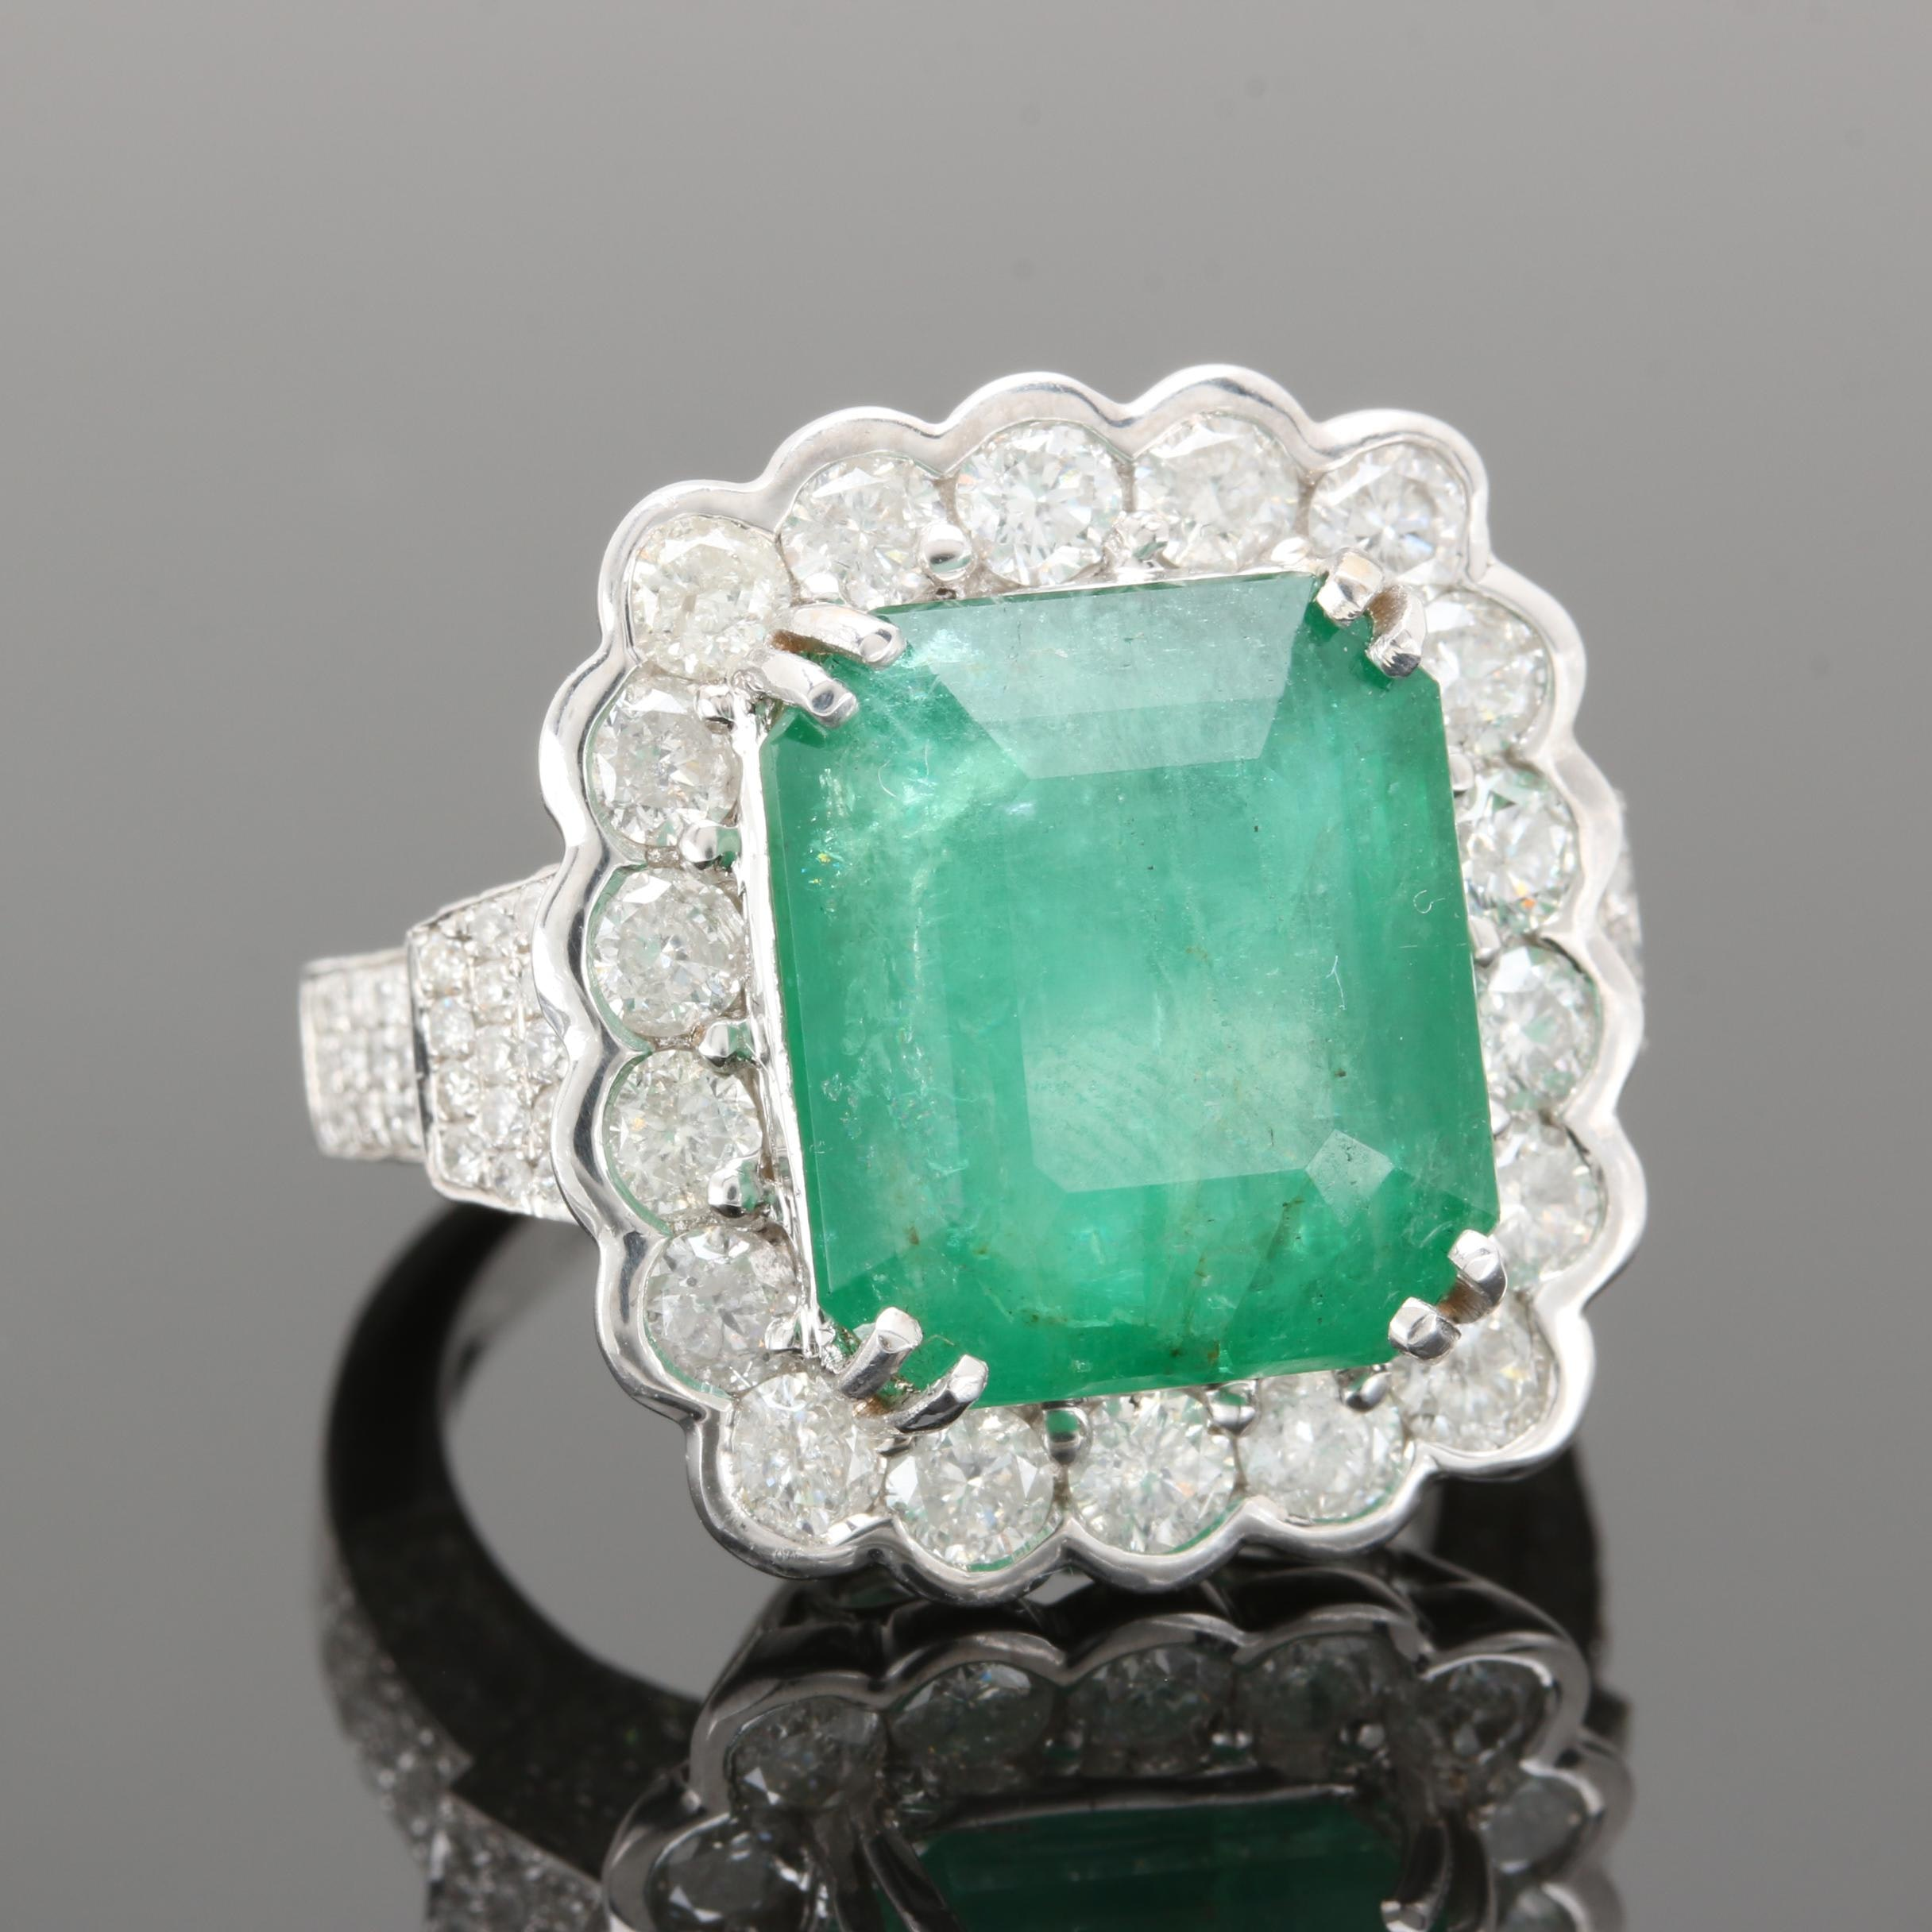 18K White Gold 8.70 CT Emerald and 2.20 CTW Diamond Ring